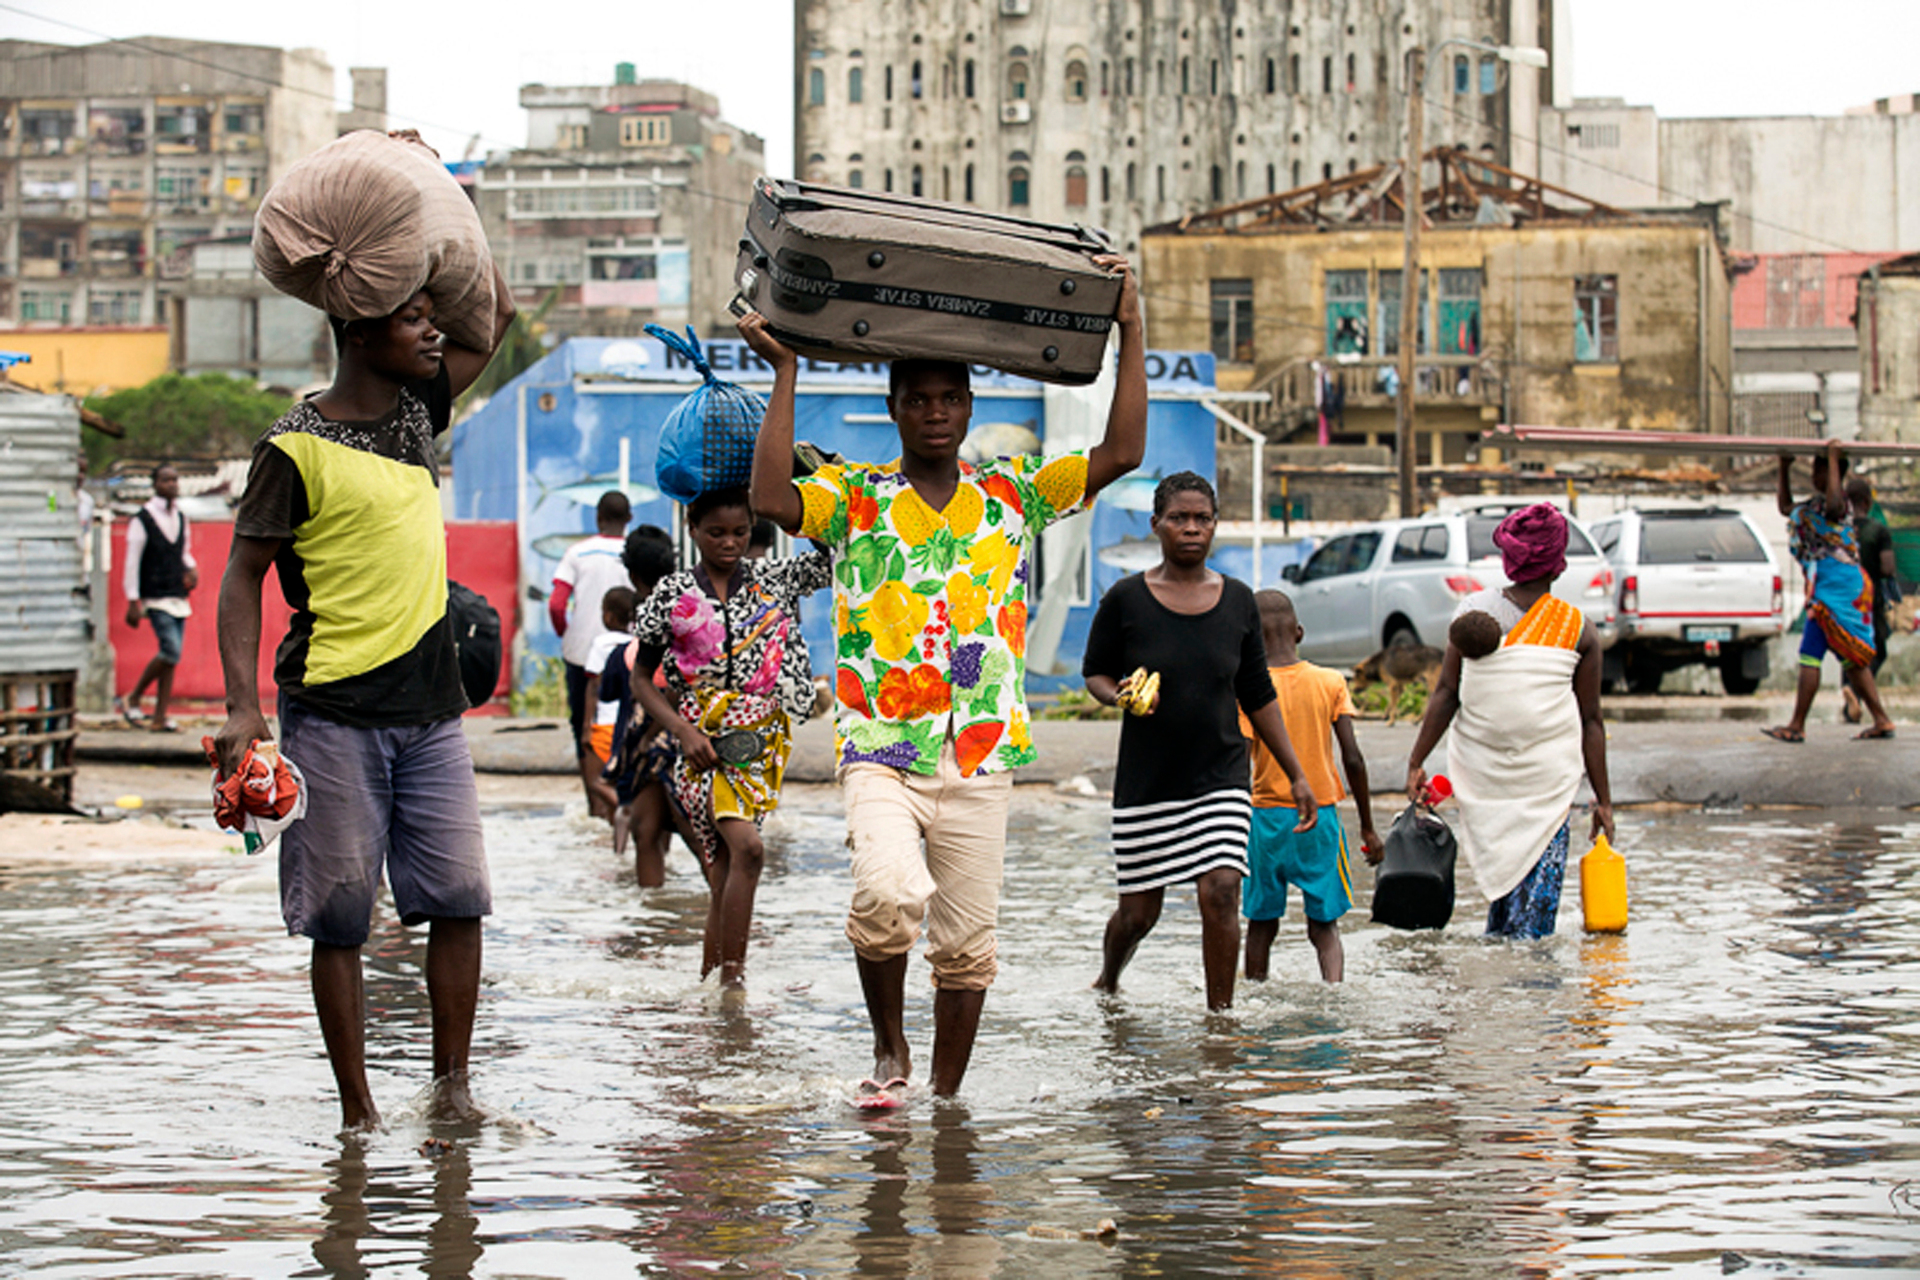 Mozambique mourns Cyclone Idai deaths as rescuers struggle to reach those affected